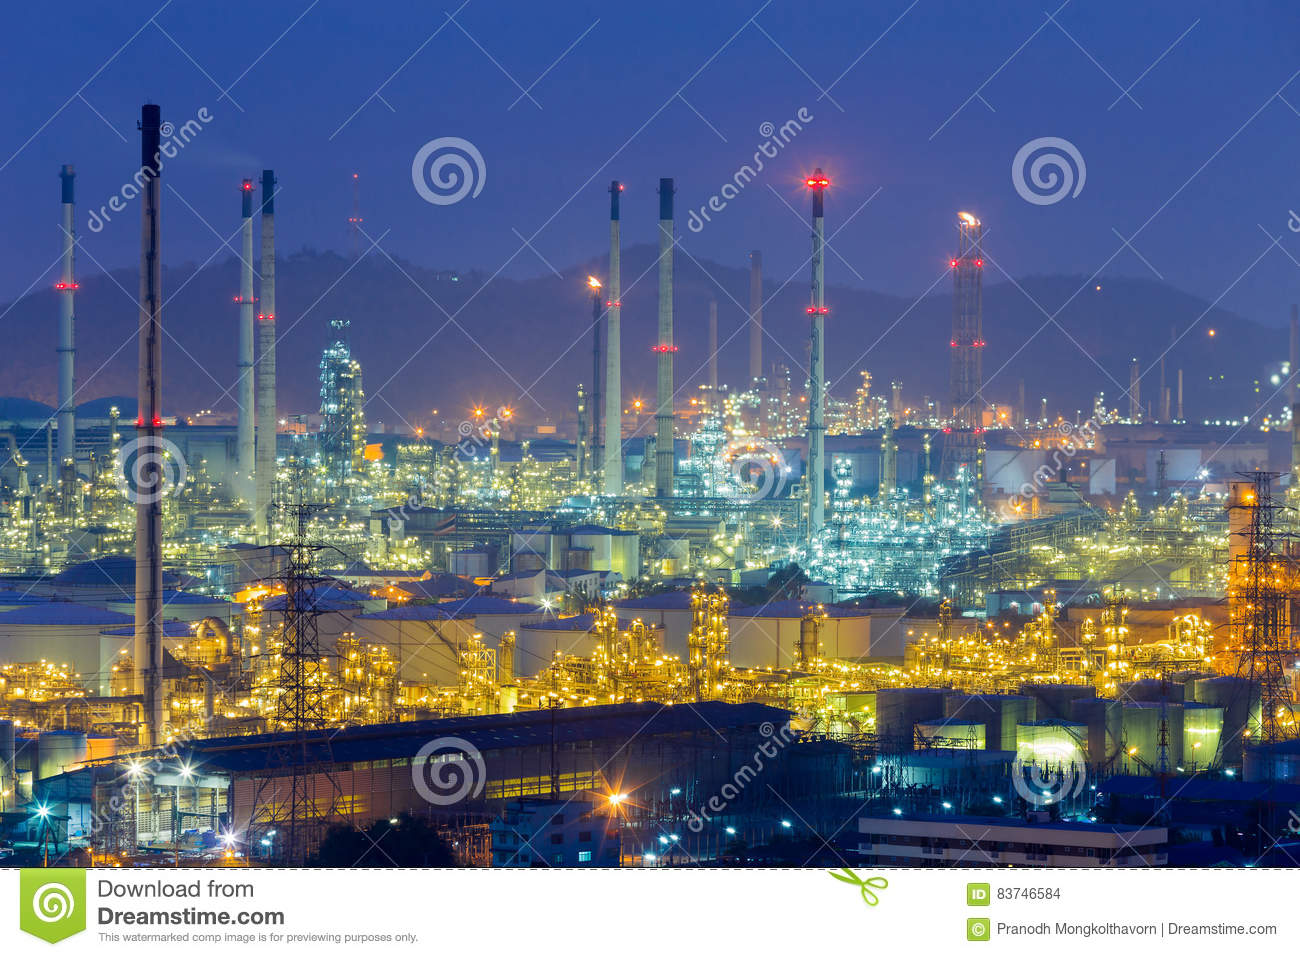 oil-refinery-lights-night-view-mountain-